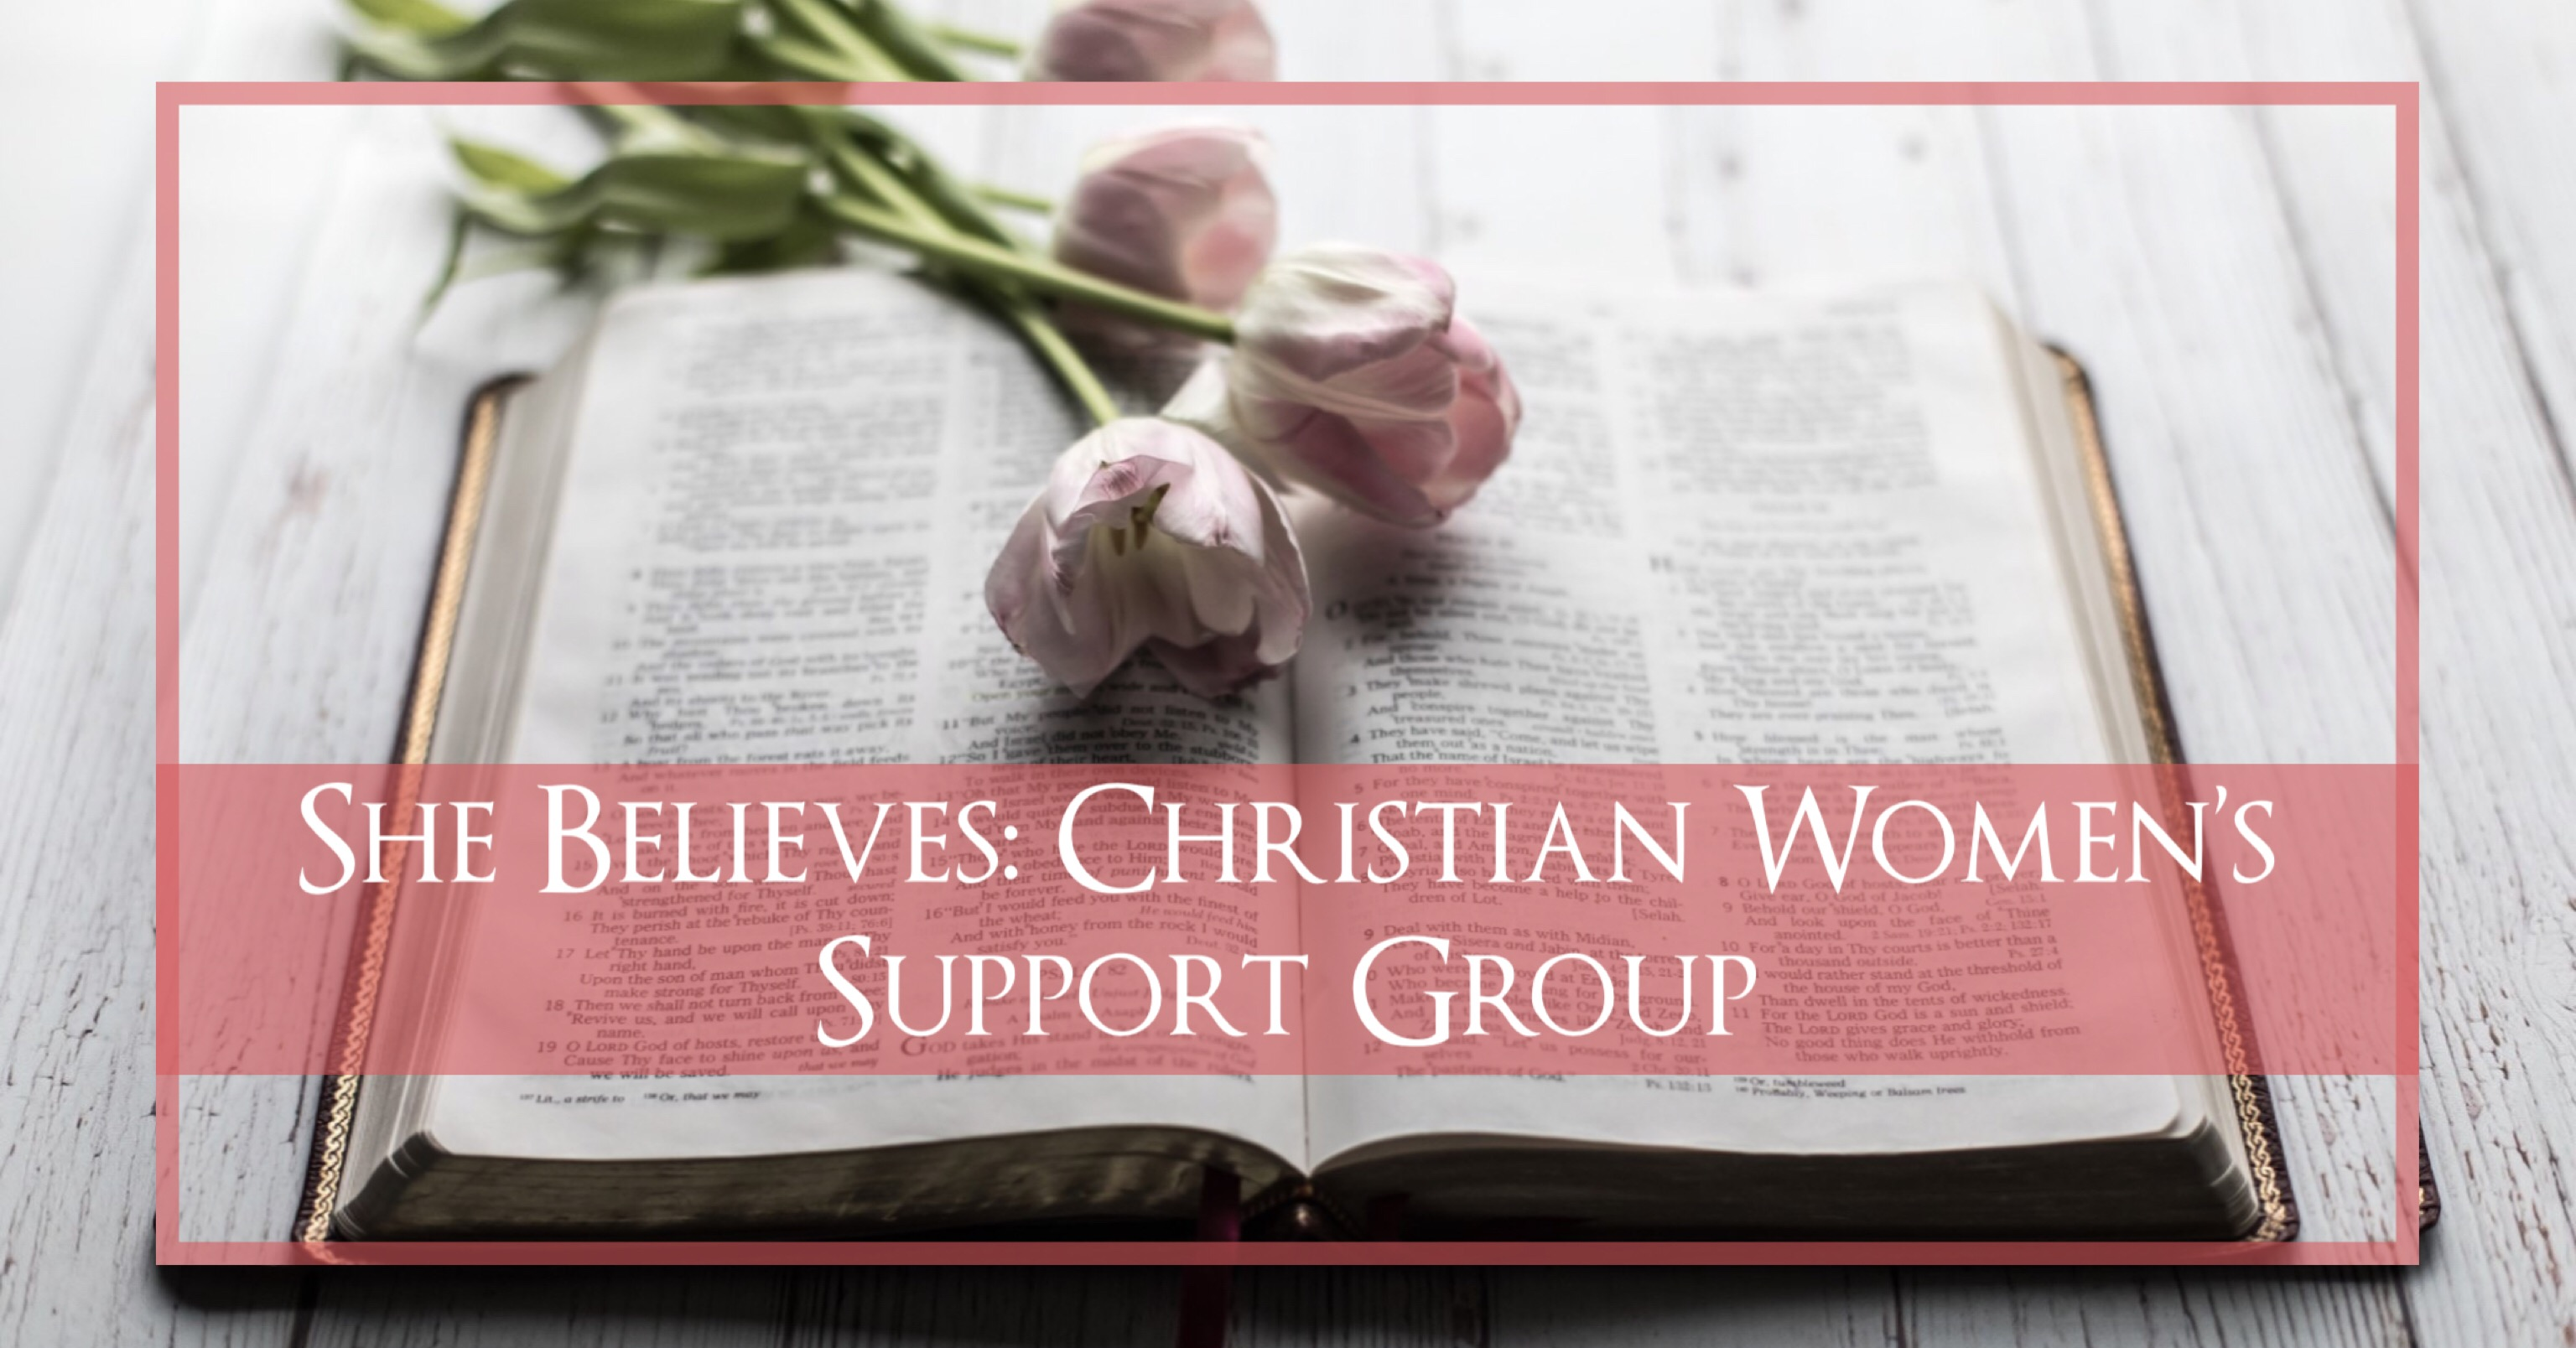 She Believes: Christian Women's Support Group